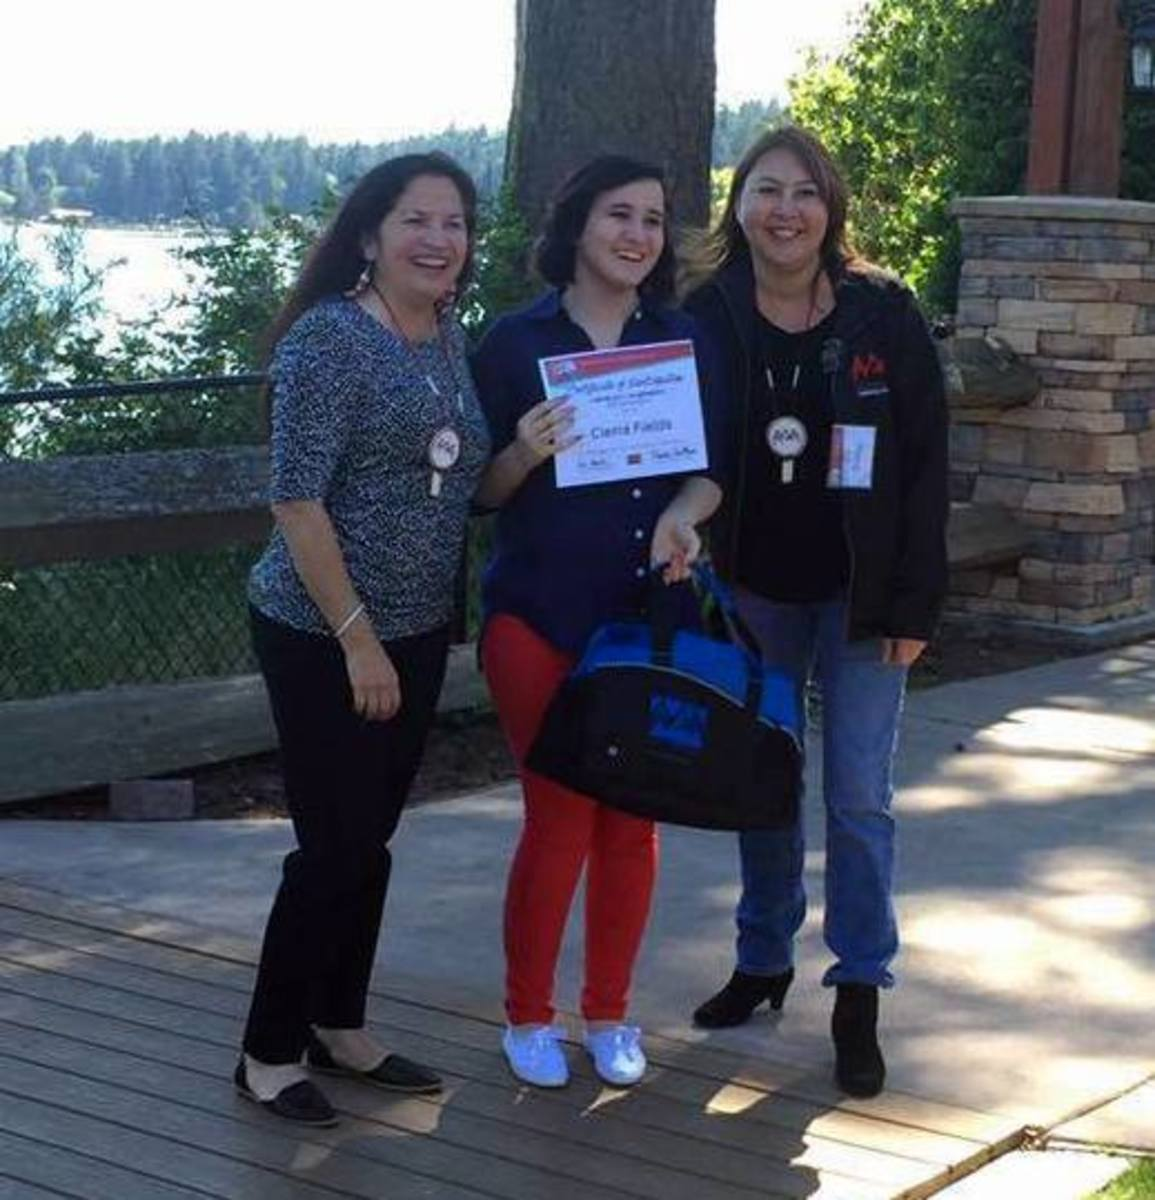 I was honored to attend the Native Action Network's Young Native Women Leadership Conference in Seattle, WA - Courtesy Cierra Fields